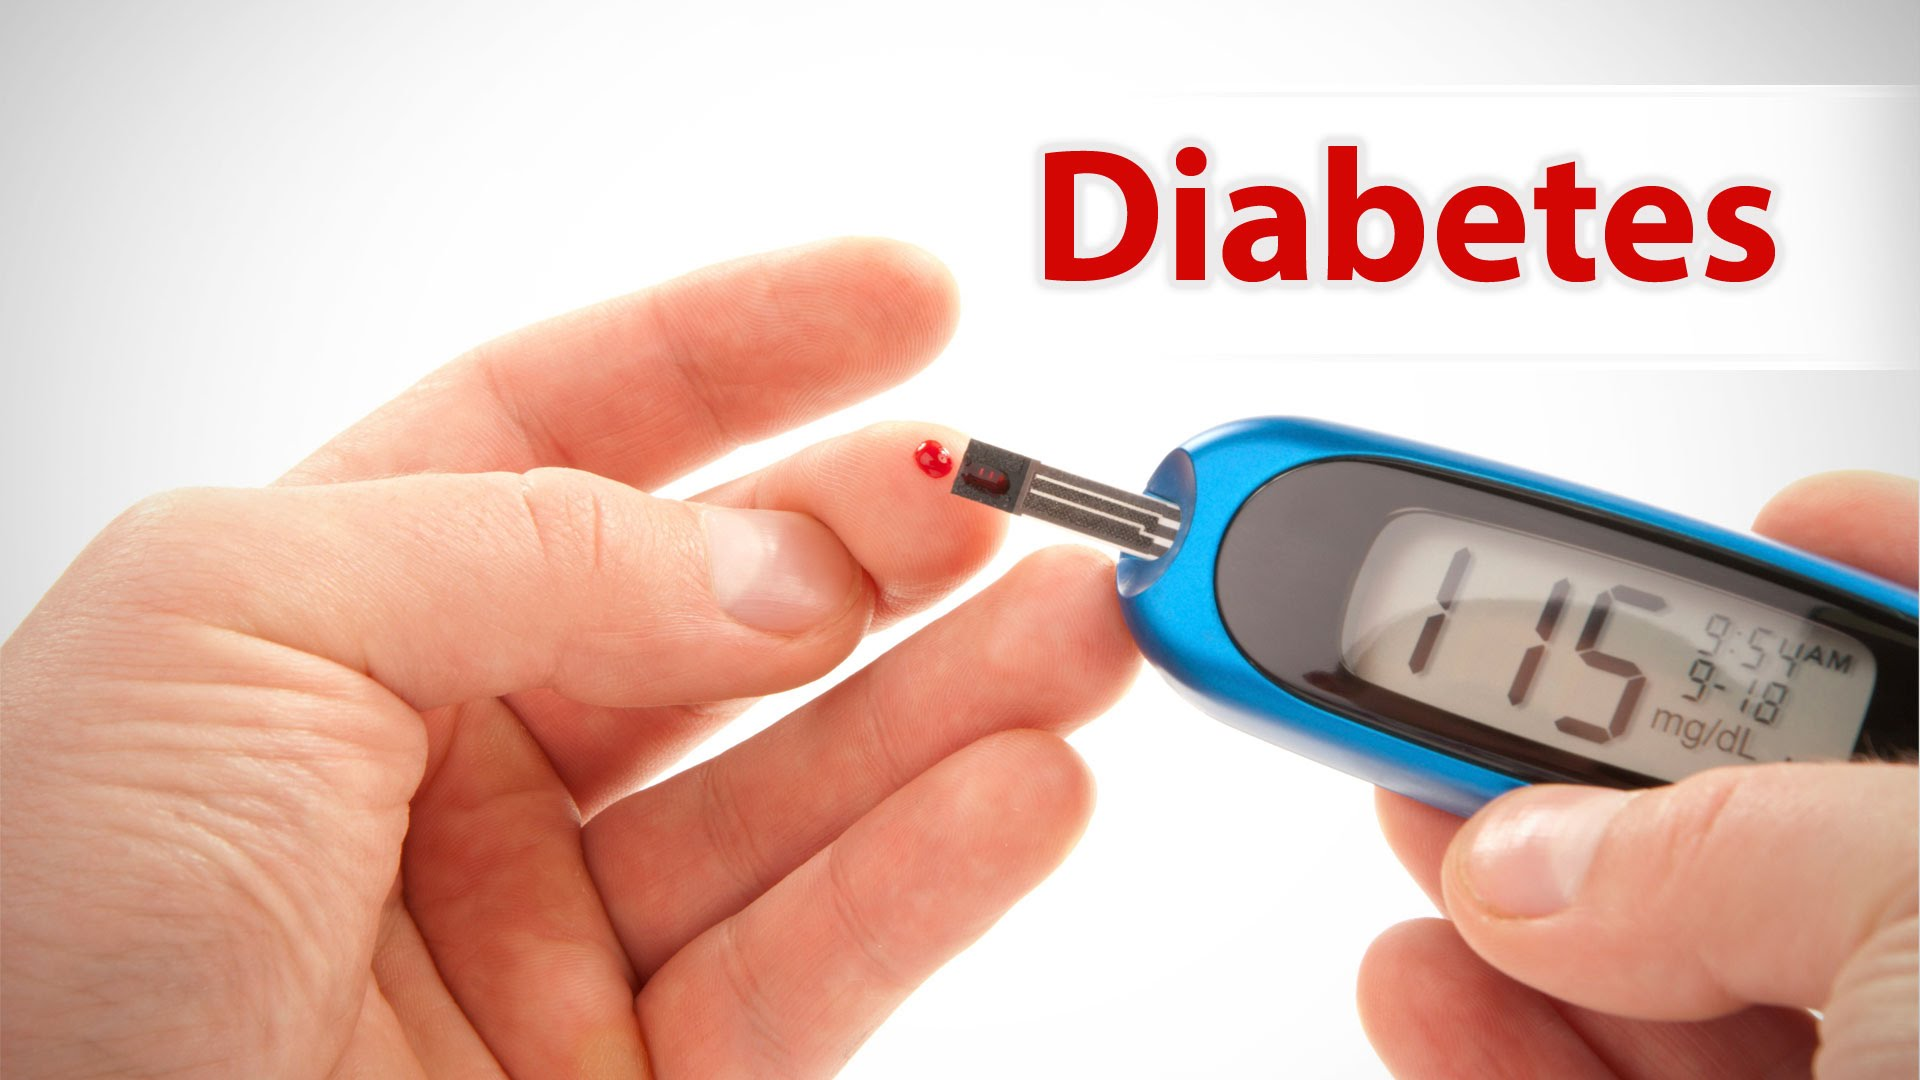 tratamiento de la diabetes en Alicante